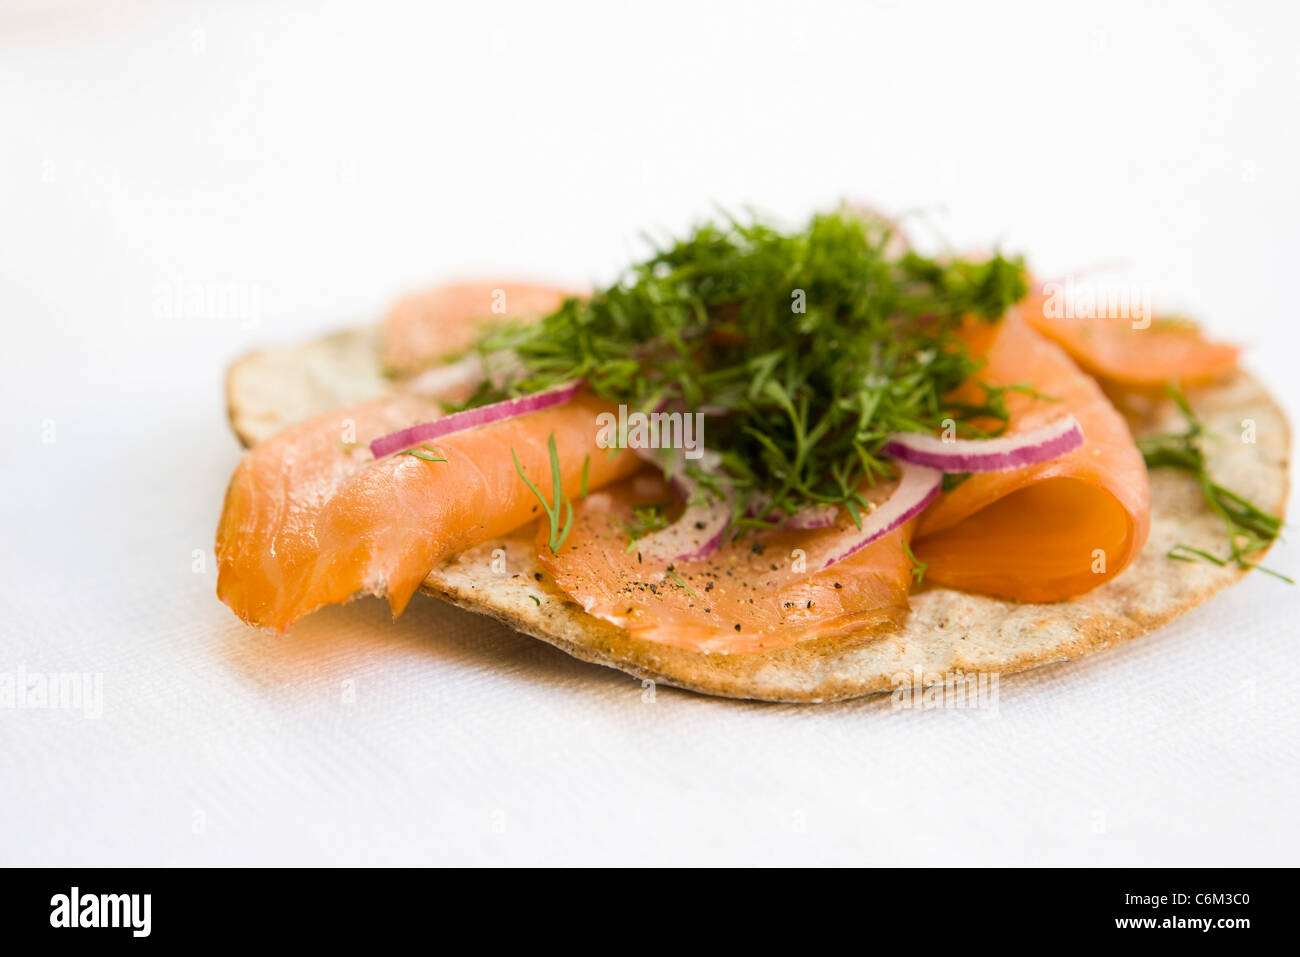 Crisp bread topped with smoked salmon and fresh dill - Stock Image